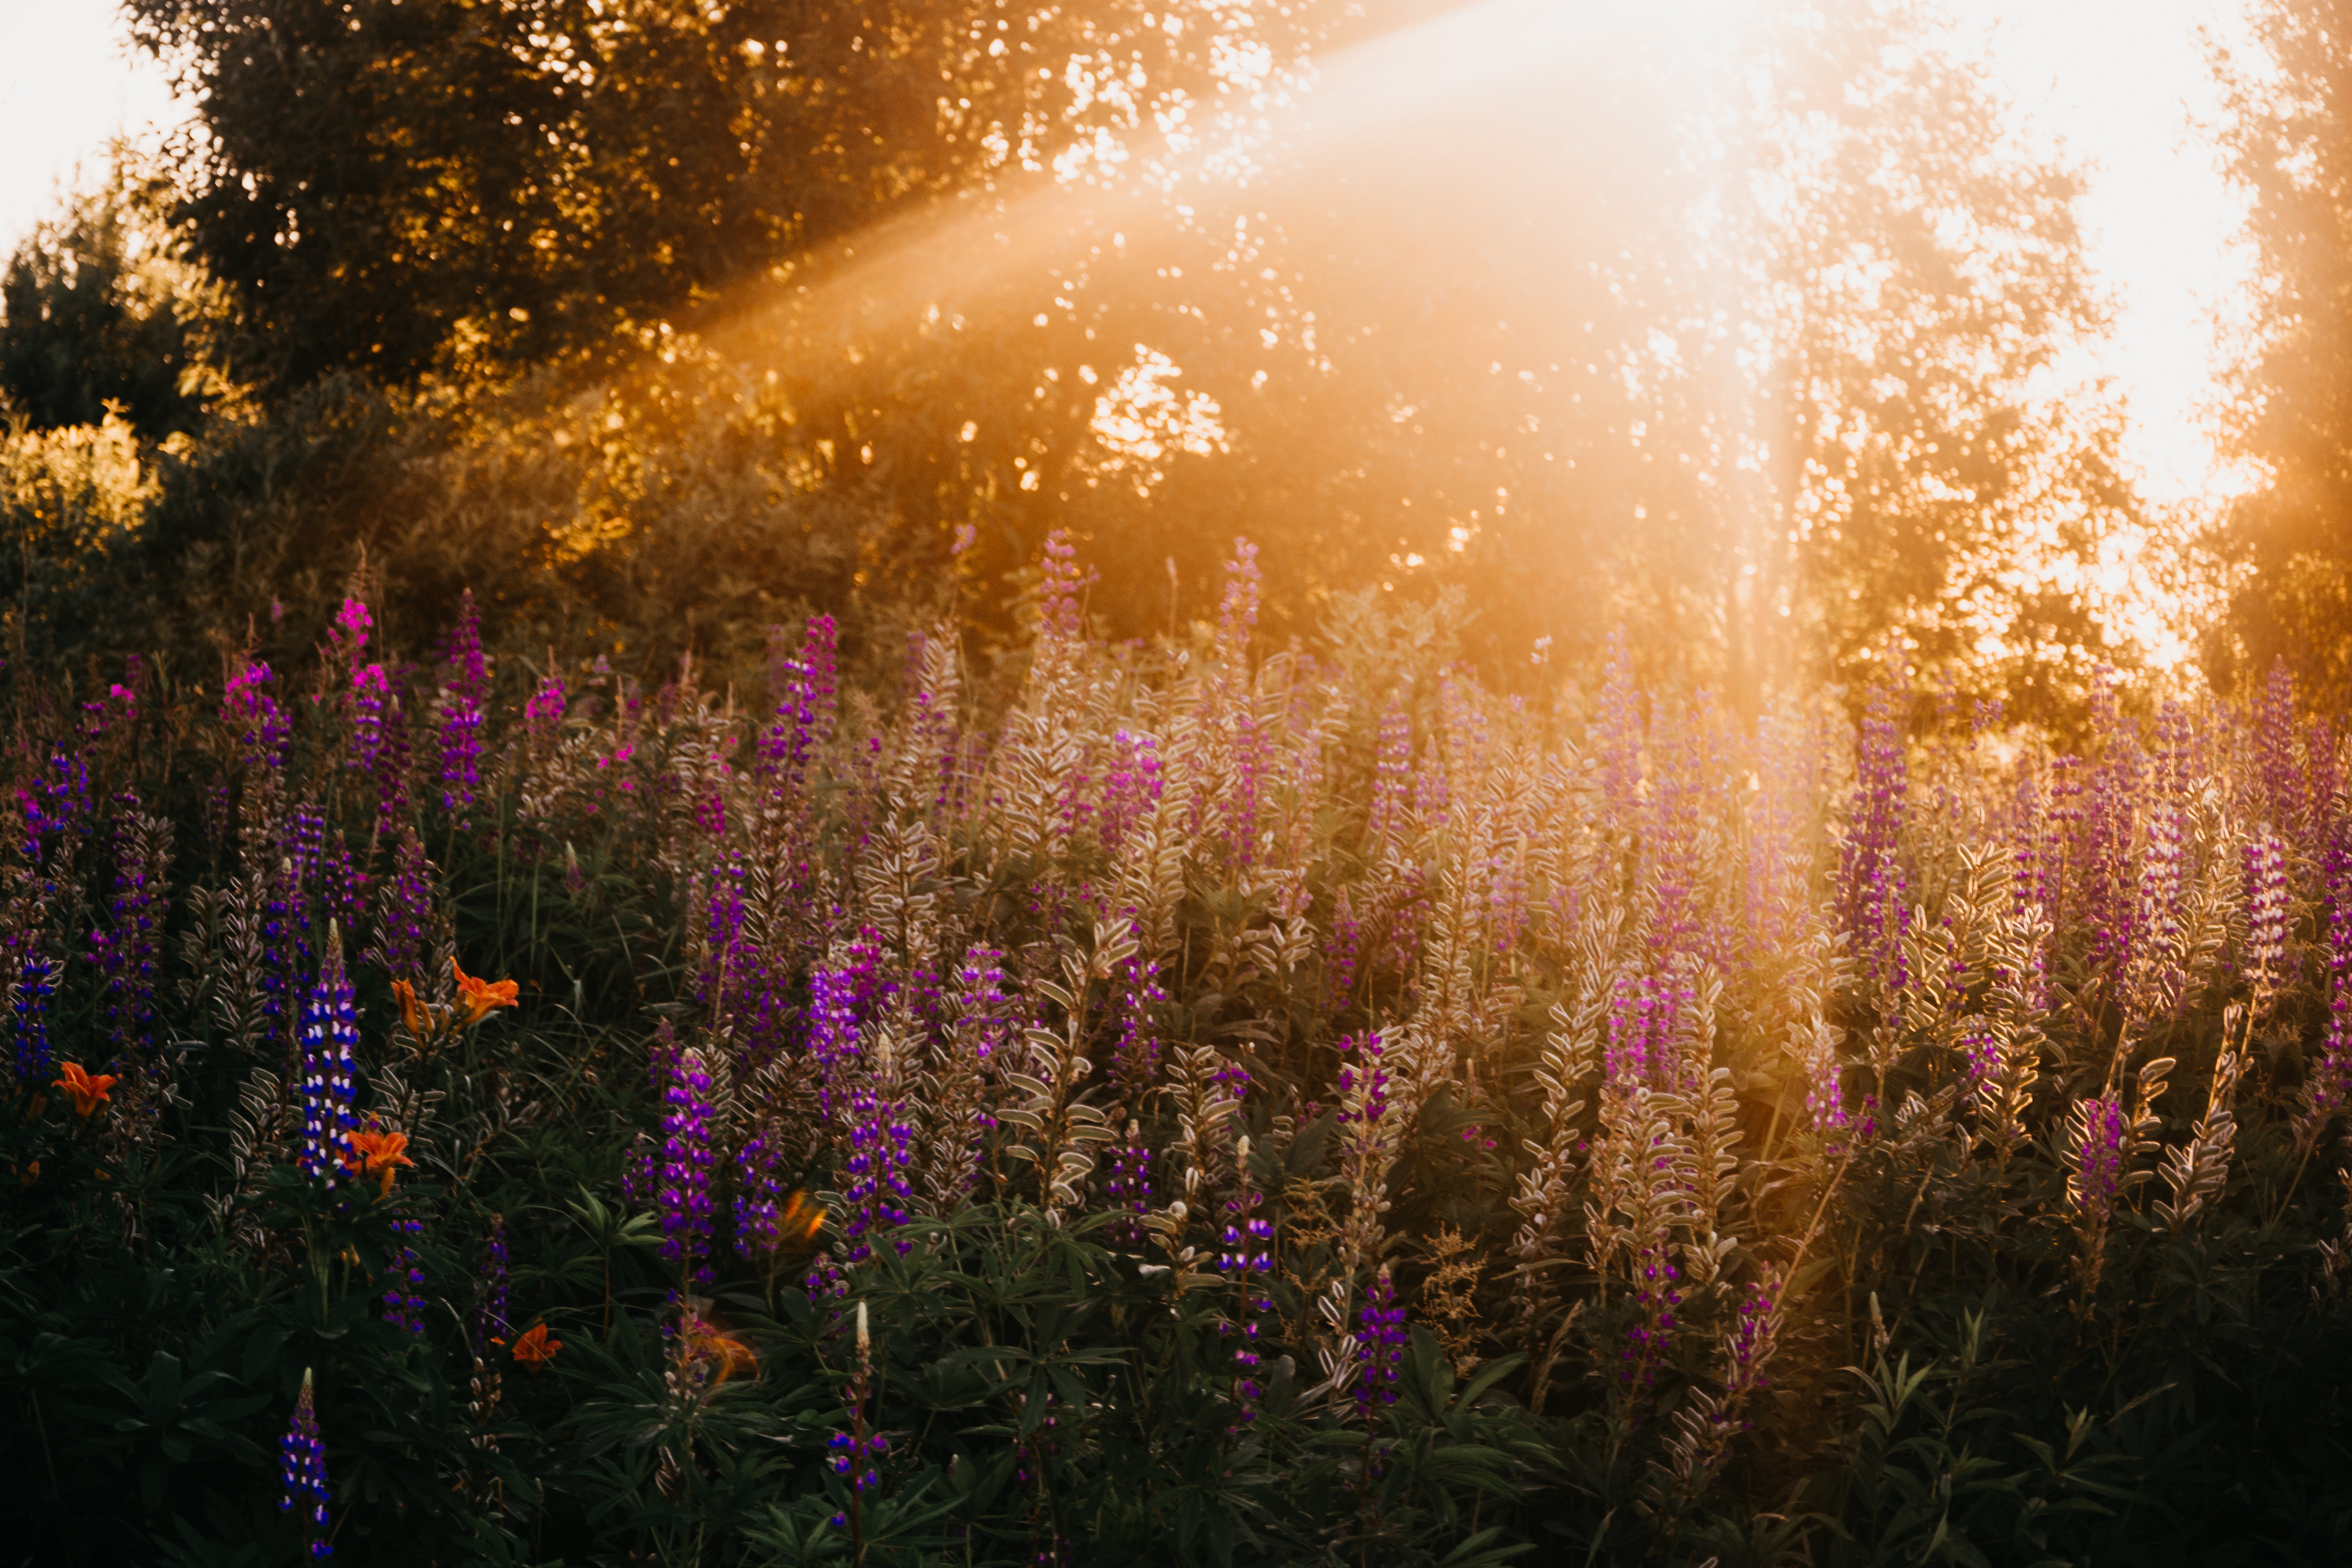 Photo of Lavenders During Golden Hour